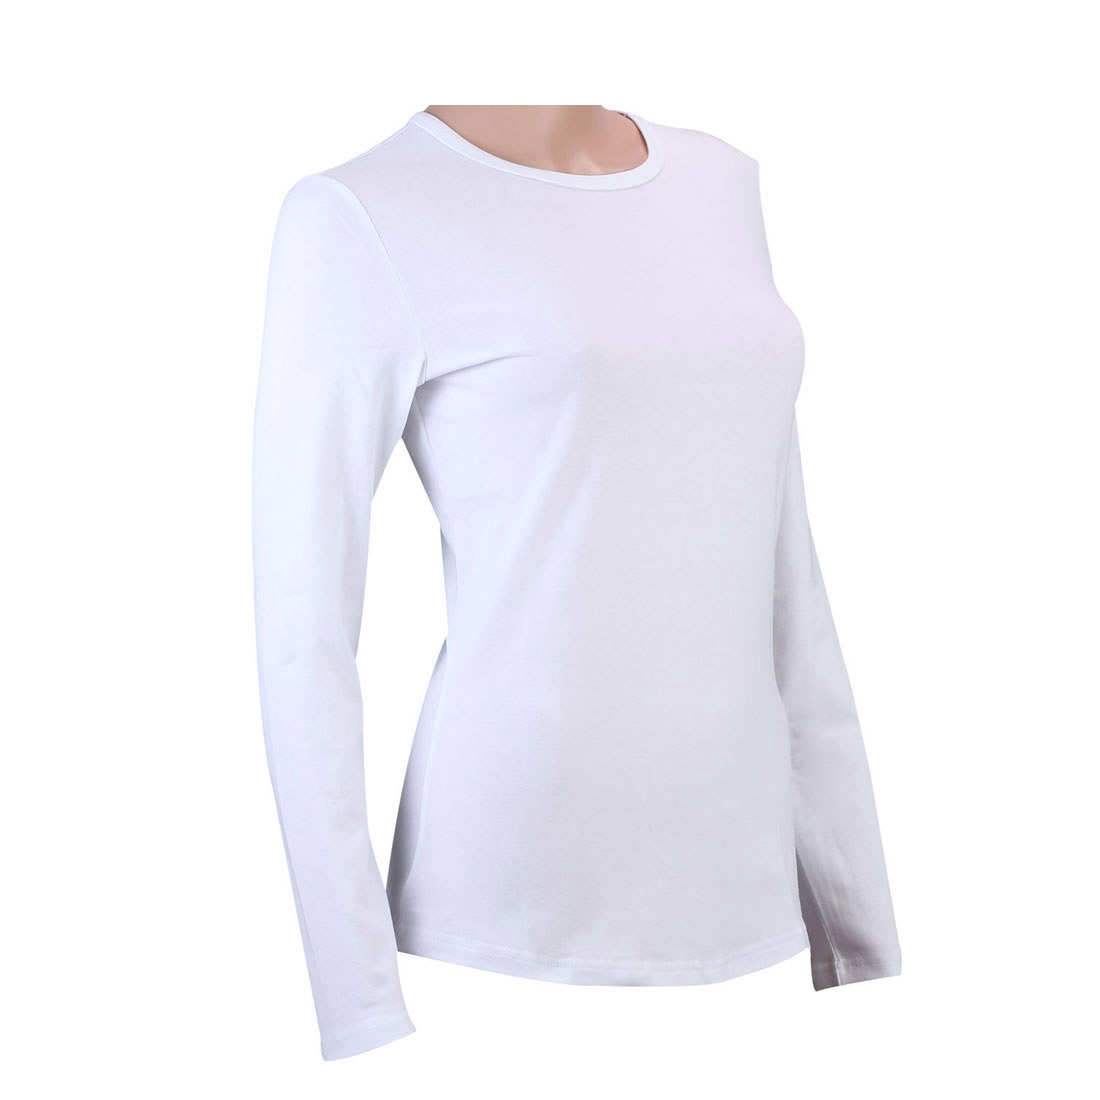 100 cotton womens v neck crew neck long sleeve t shirt for Women s crew t shirts